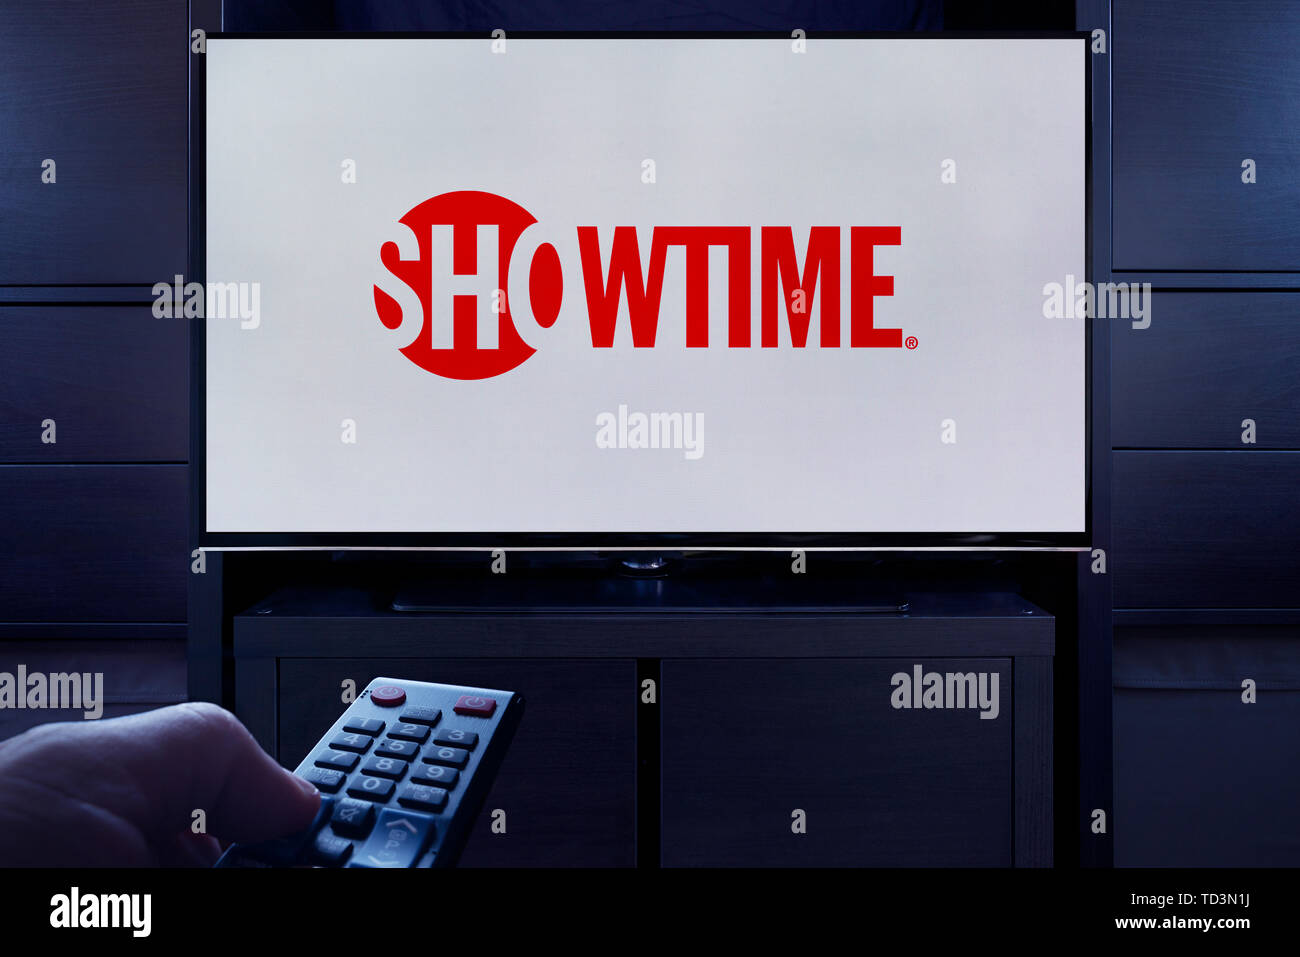 Un uomo punti un telecomando TV al televisore che visualizza il logo per la Showtime video streaming on demand service (solo uso editoriale). Immagini Stock